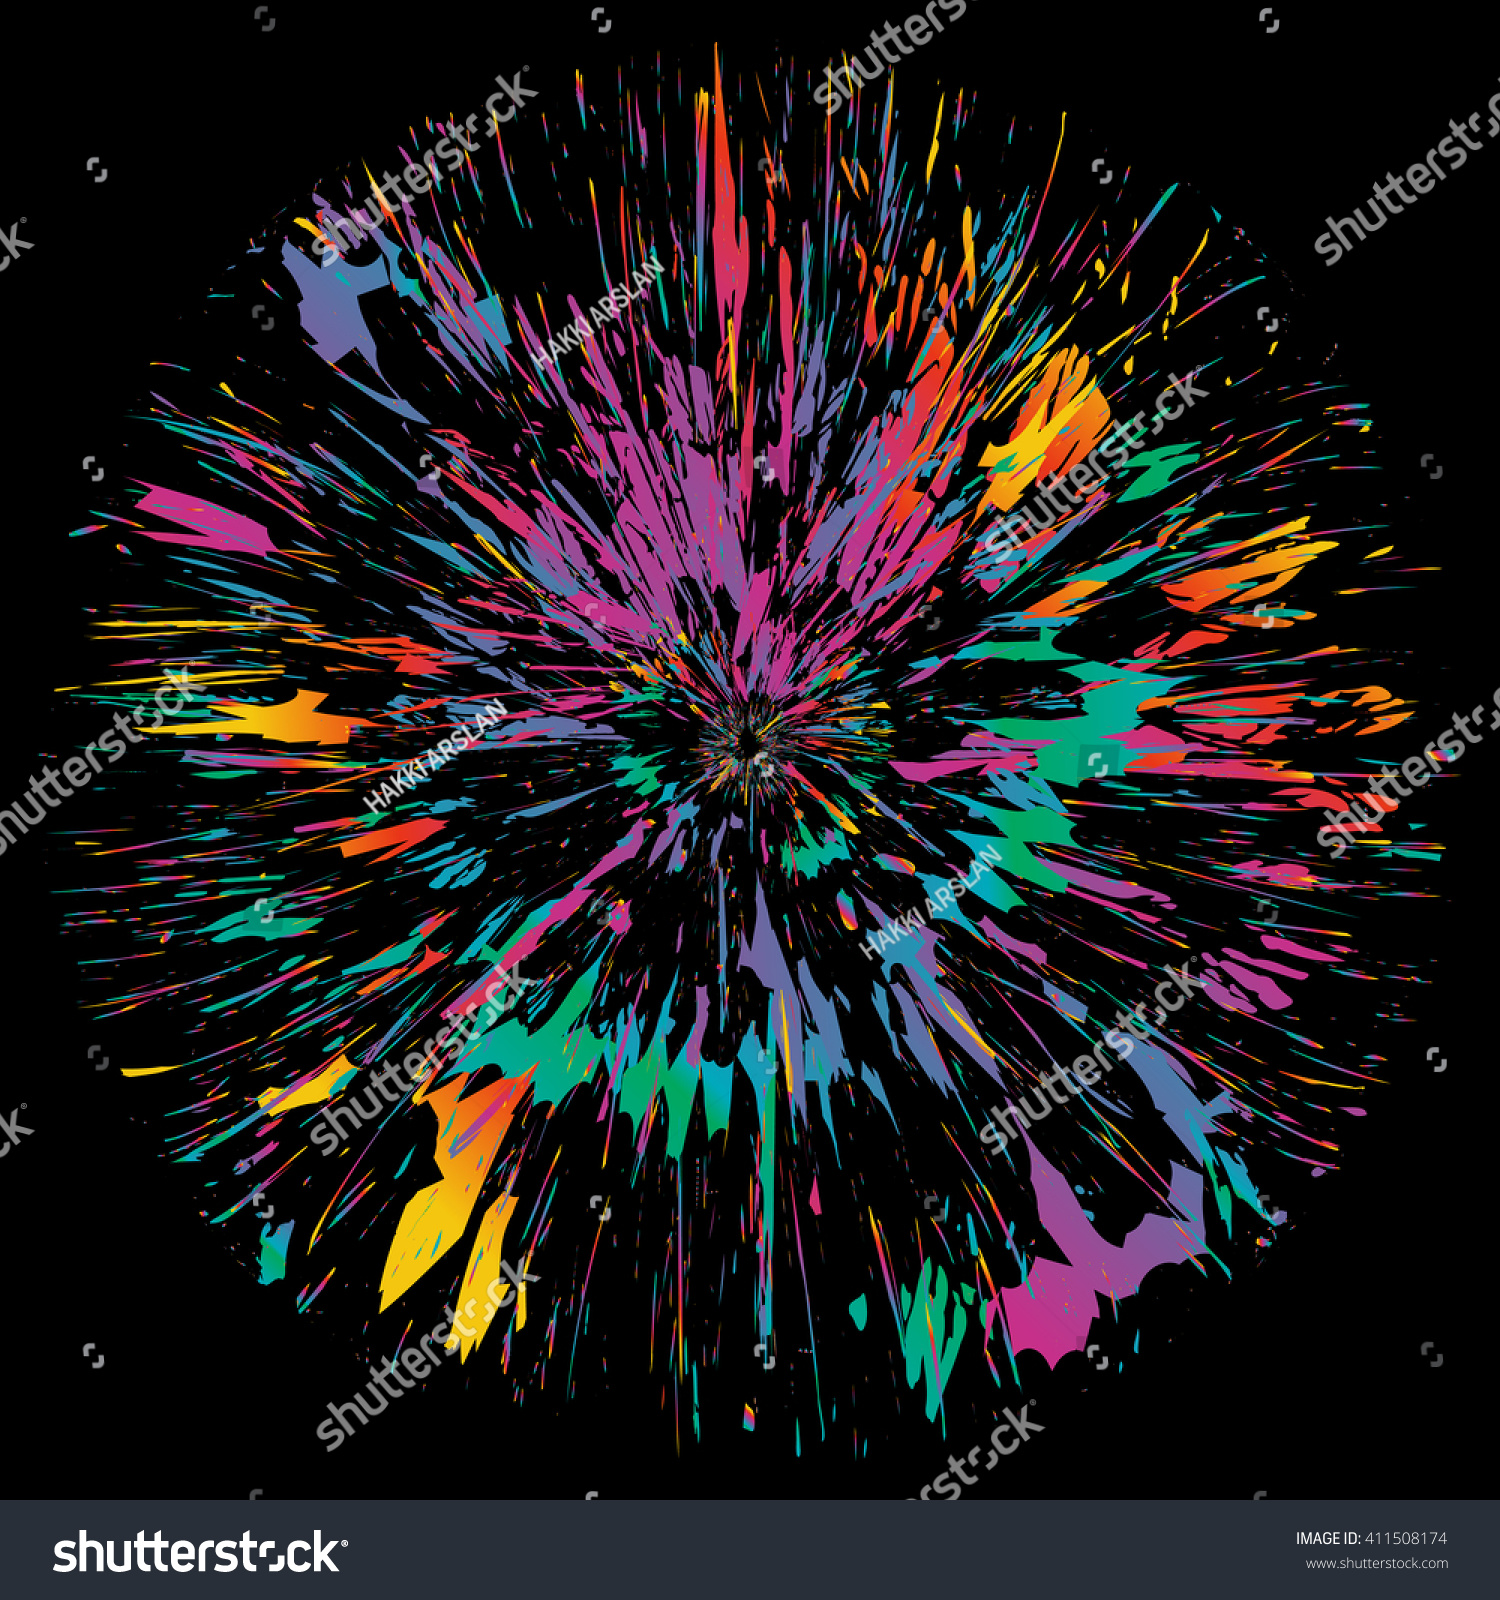 Abstract Color Splash Isolated Flower Illustration Stock Vector Photography Ballons Tumblr